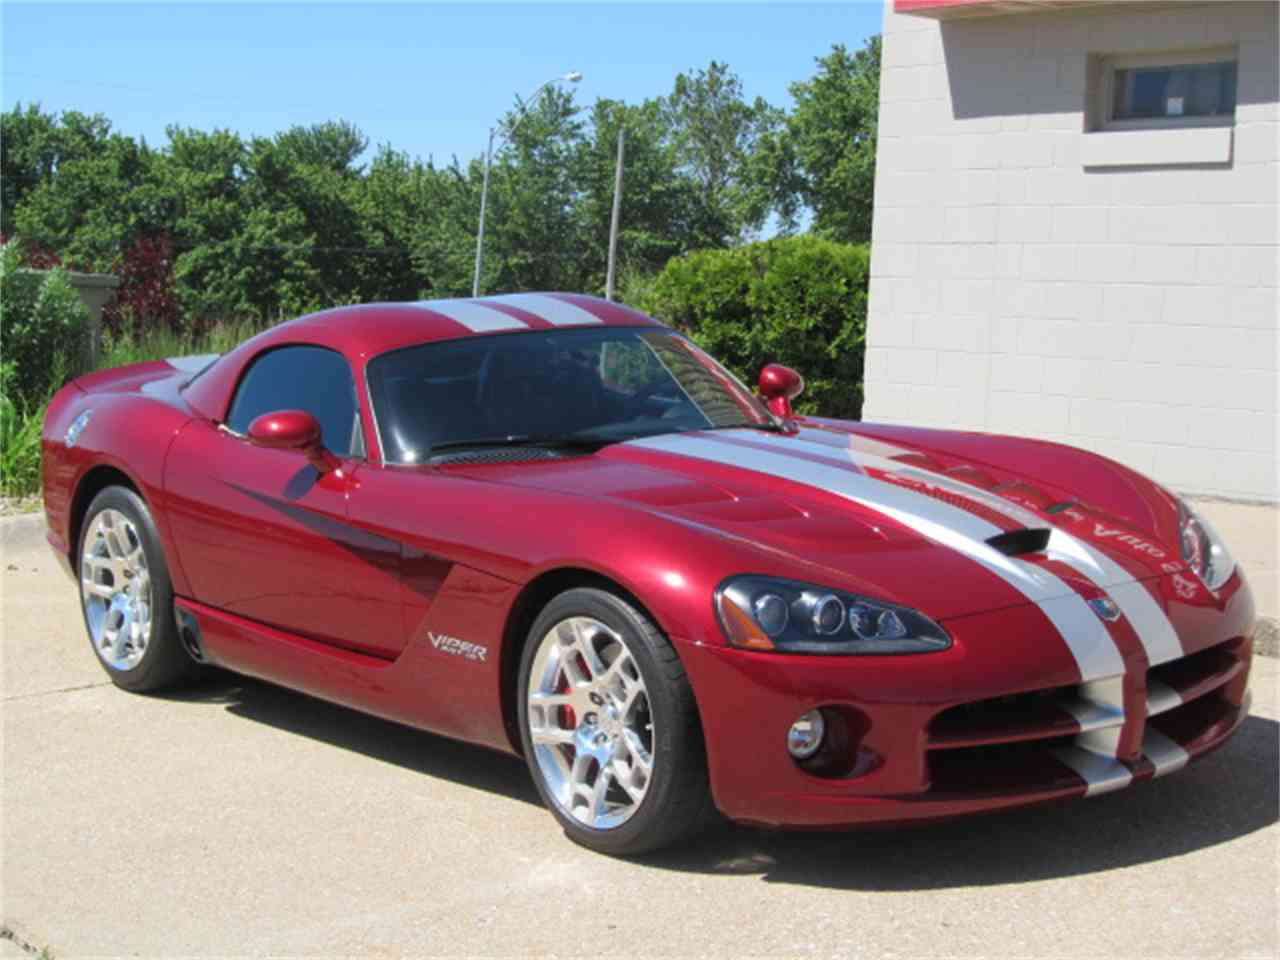 Dodge Viper For Sale >> 2008 Dodge Viper For Sale Classiccars Com Cc 988426